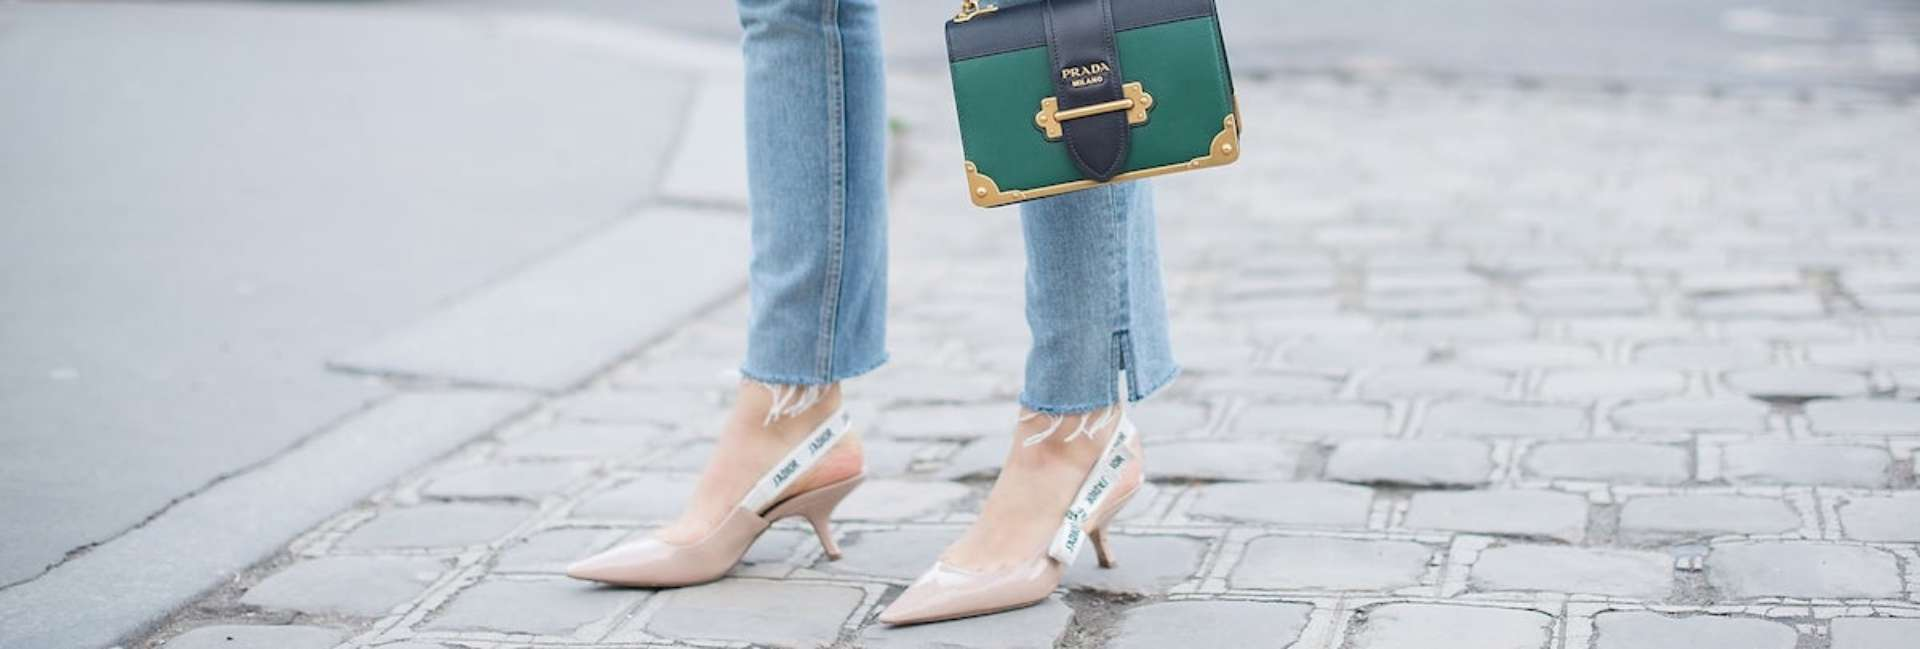 Here come ugly heels